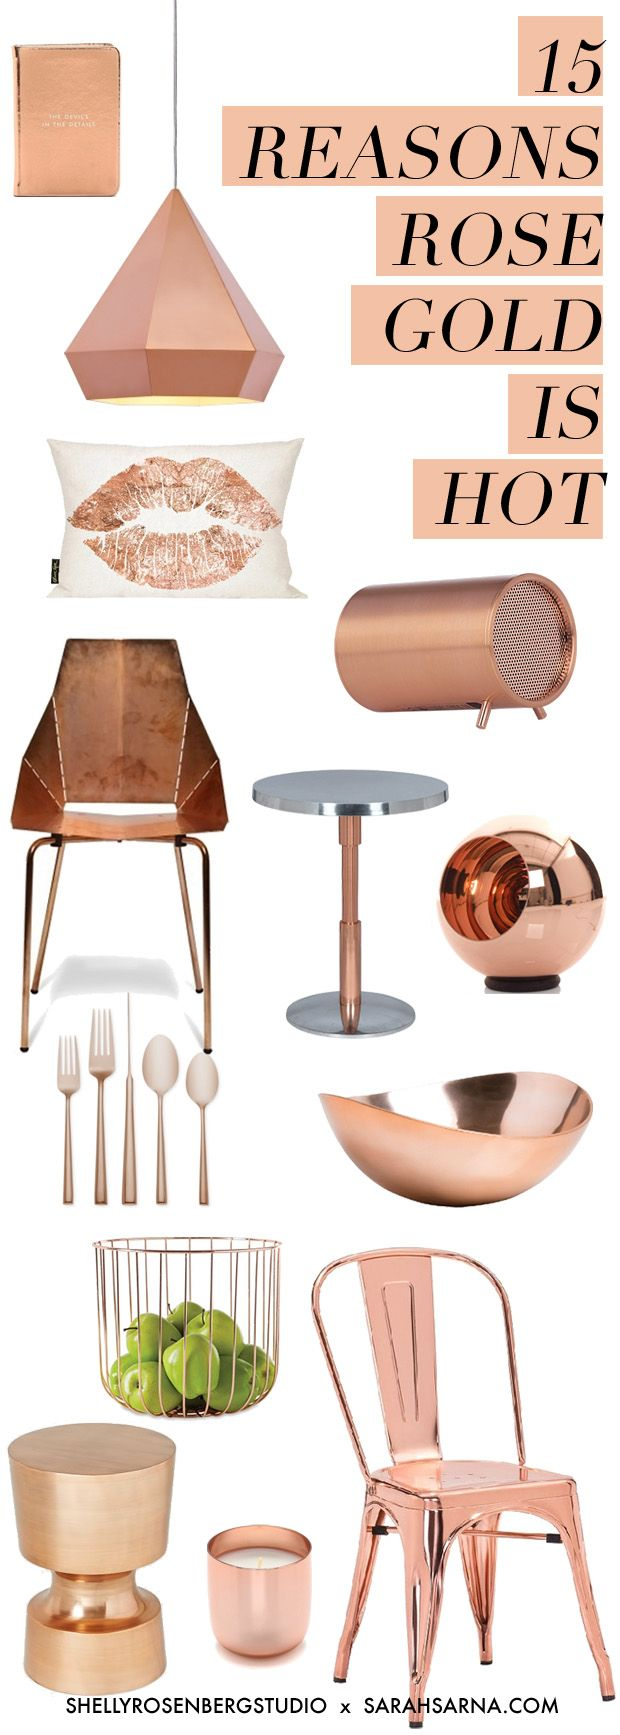 Lisa T Planter Rose Gold Target Australia Ideas for the House